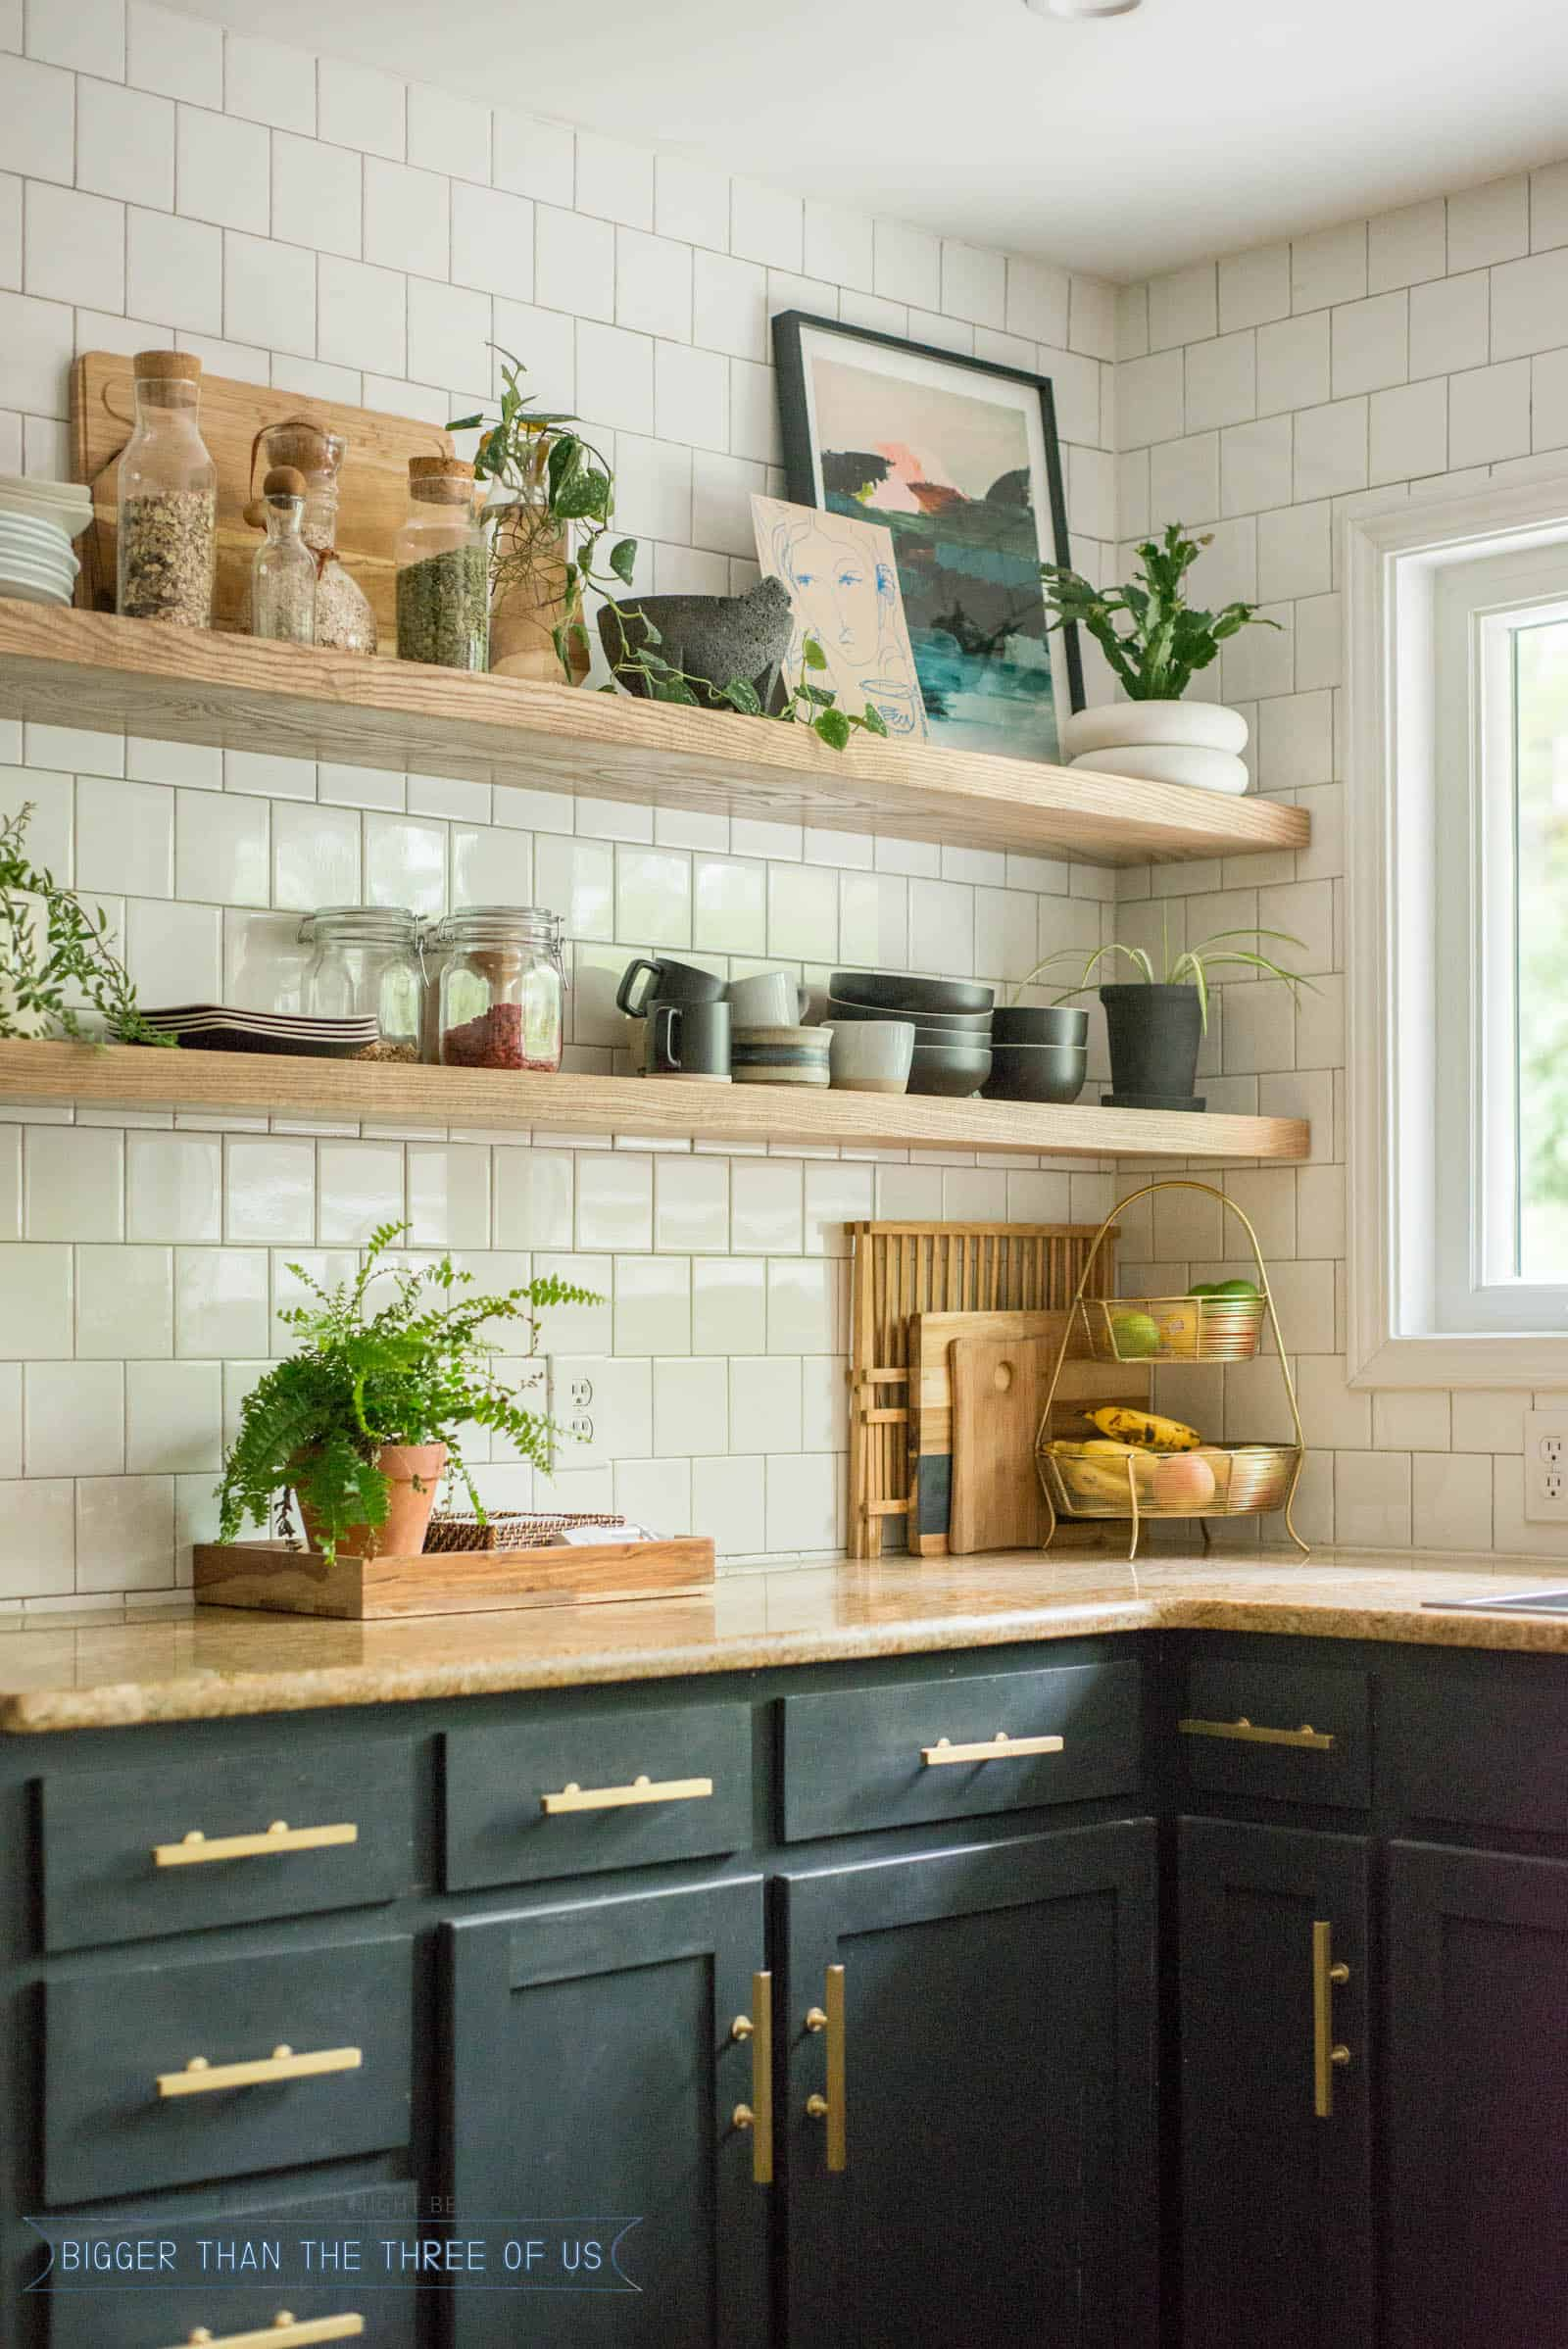 DIY Open Shelving Kitchen Guide - Bigger Than the Three of Us